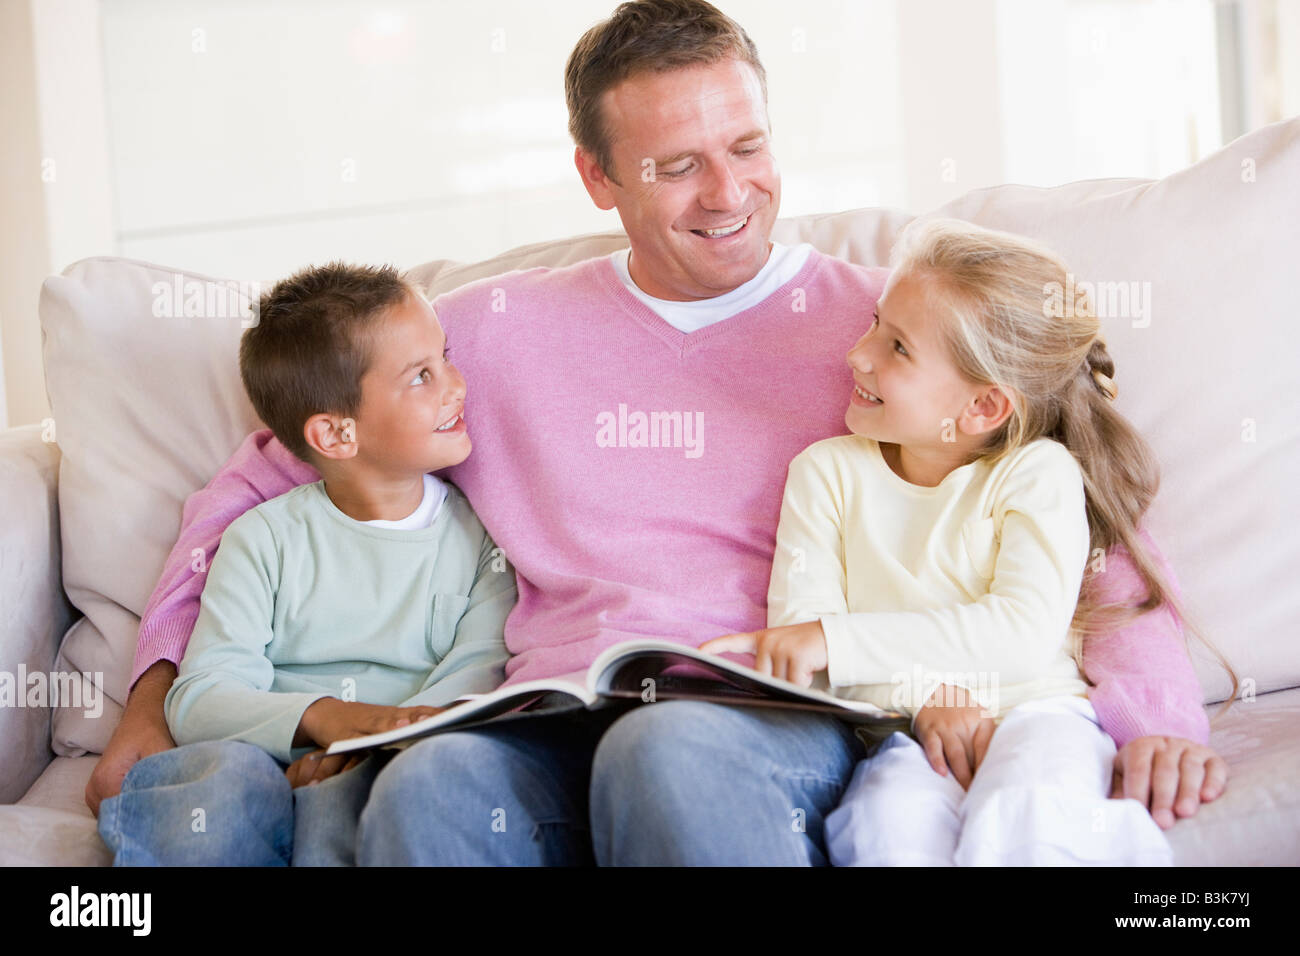 Man and two children sitting in living room reading book and smiling - Stock Image